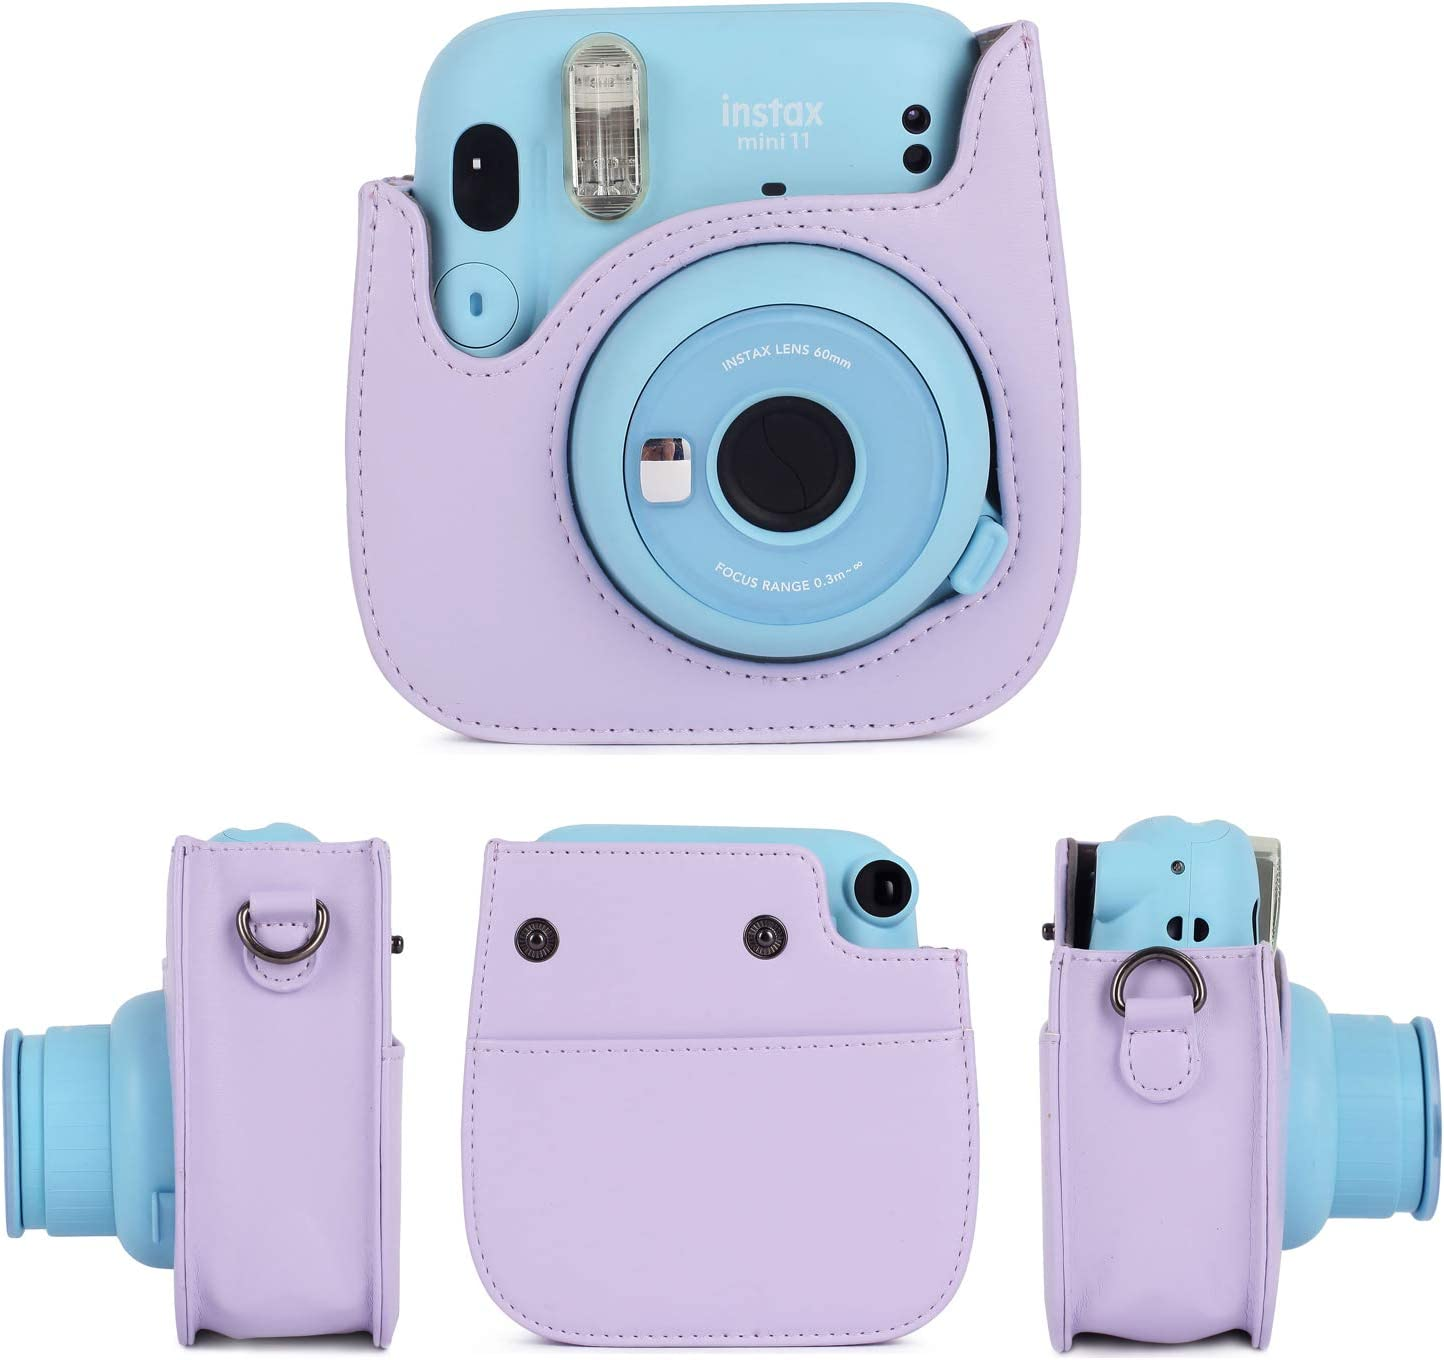 Magic Silver Phetium Instant Camera Protective Case Compatible with Fujifilm Instax Mini 11,PU Leather Bag with Pocket and Adjustable Shoulder Strap